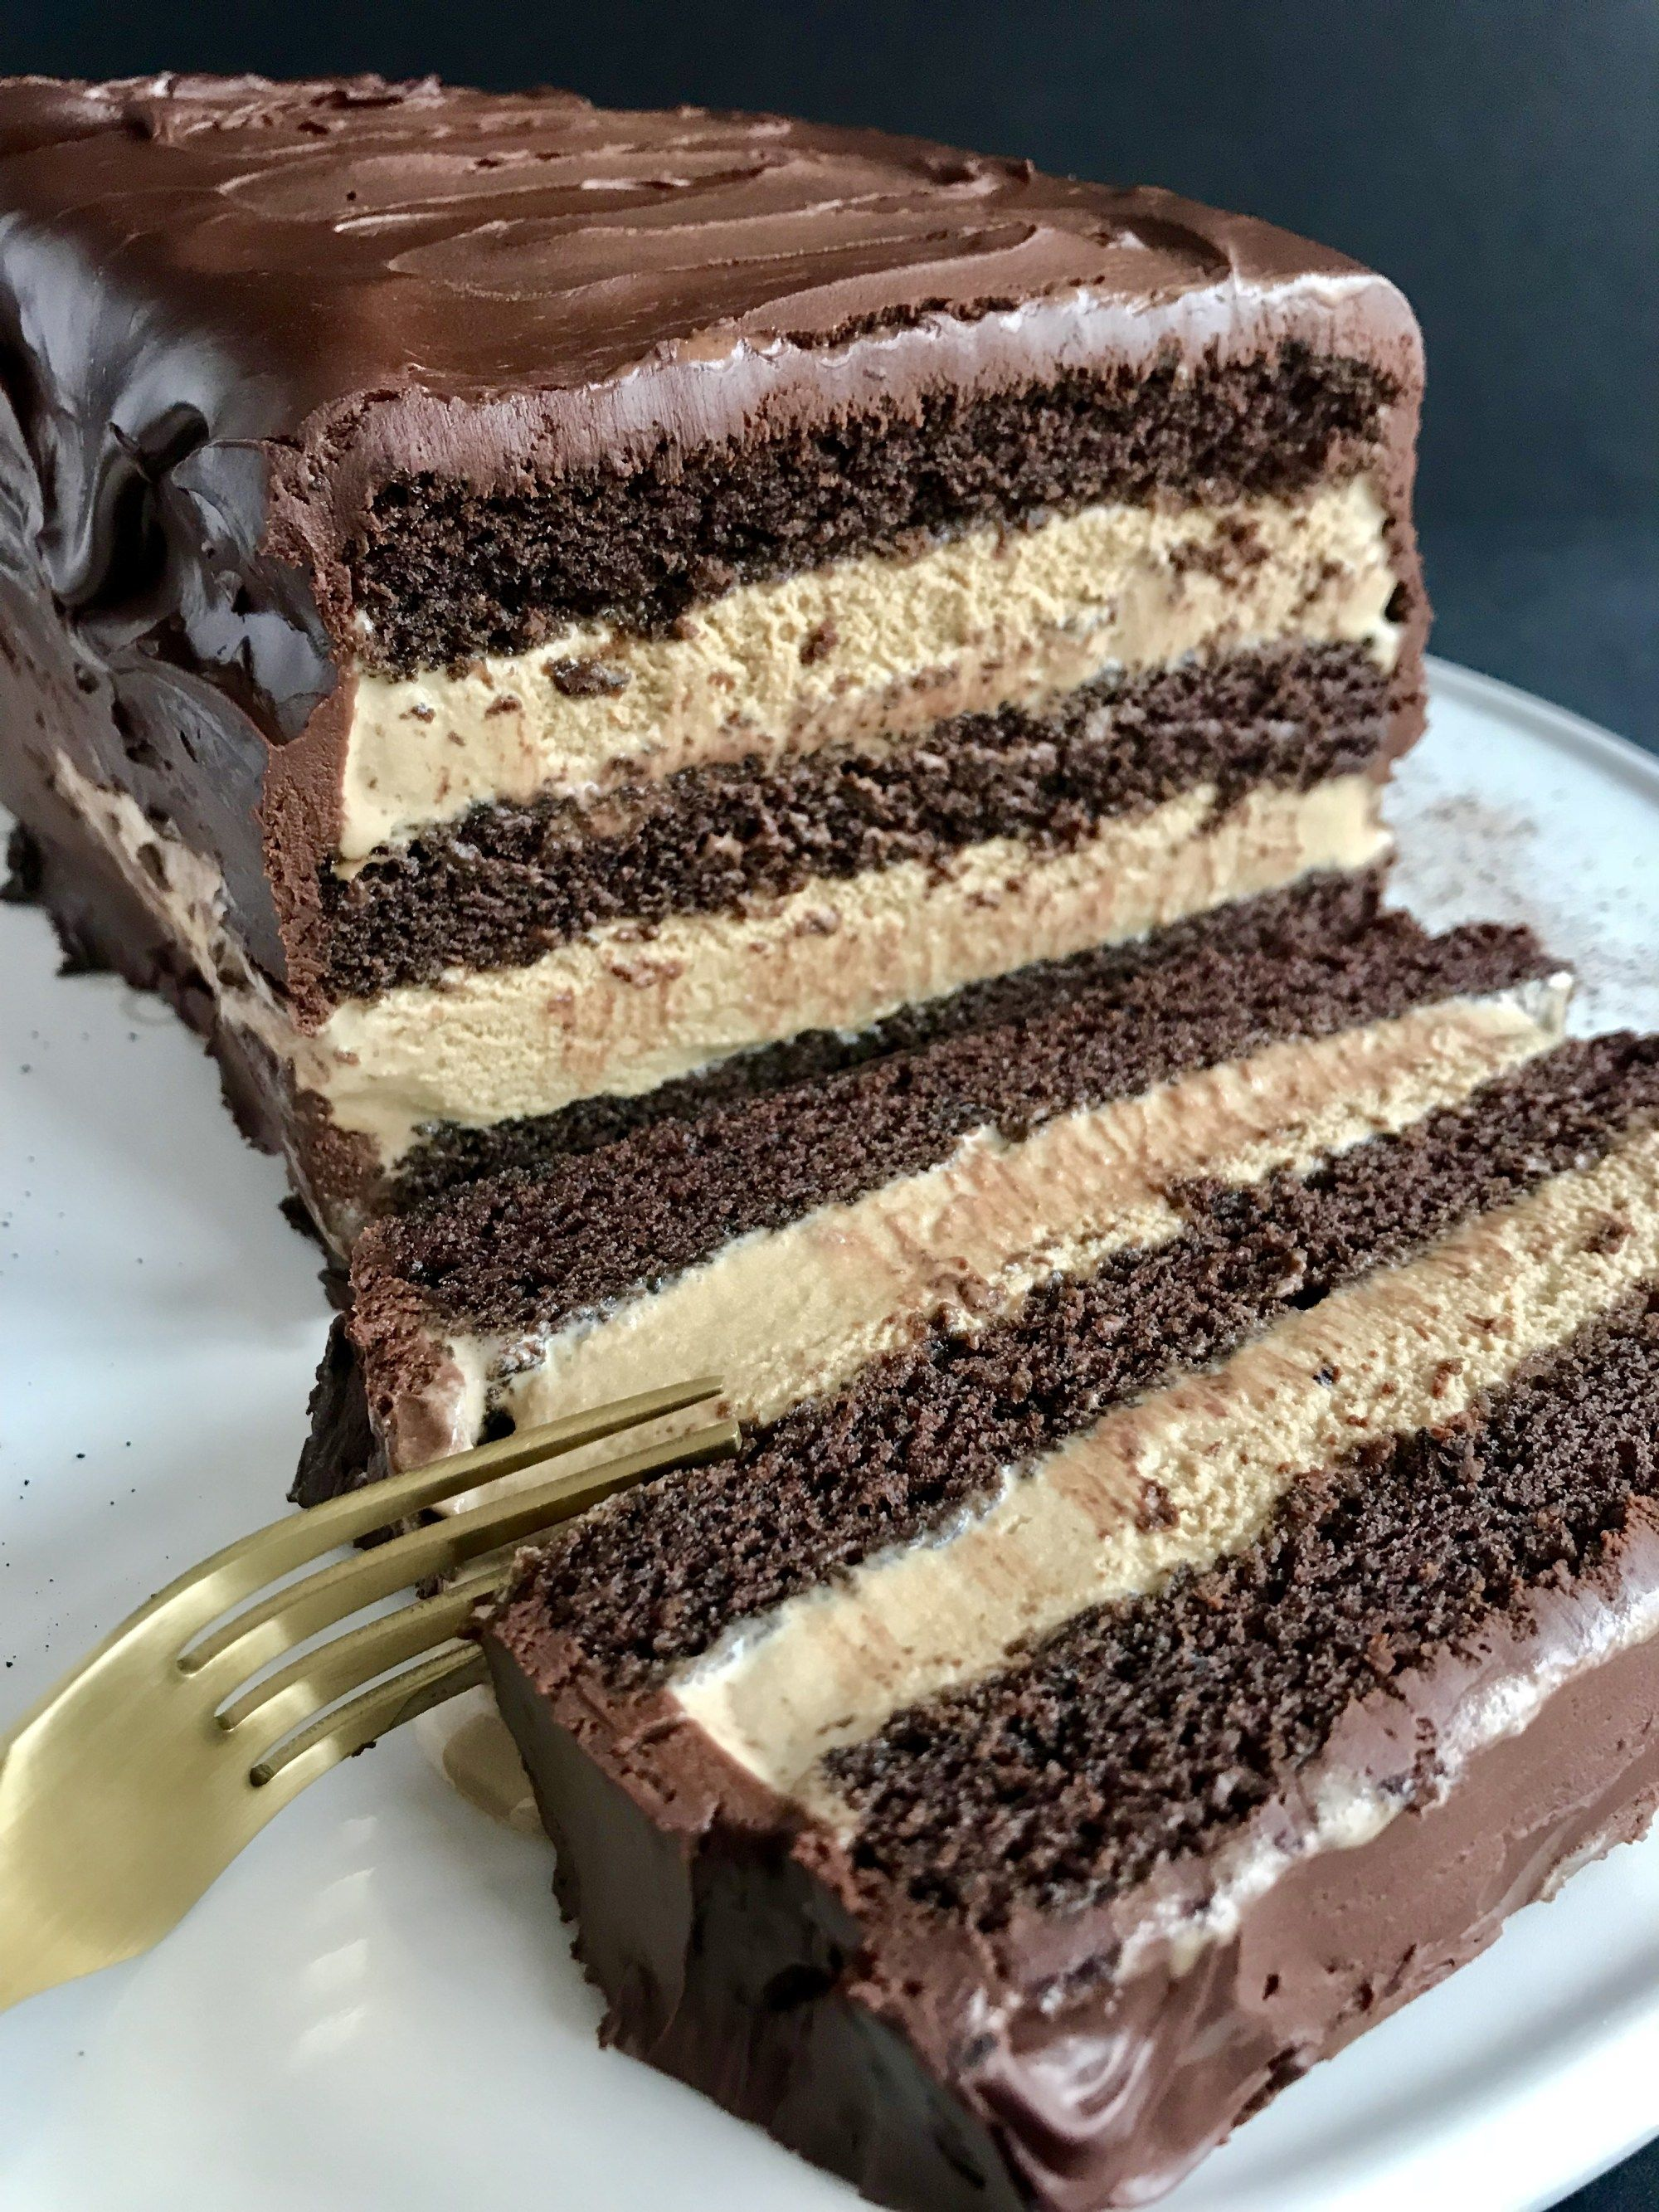 Mocha Ice Cream Cake Recipe Ice Cream Cake Homemade Ice Cream Cake Coffee Ice Cream Cake